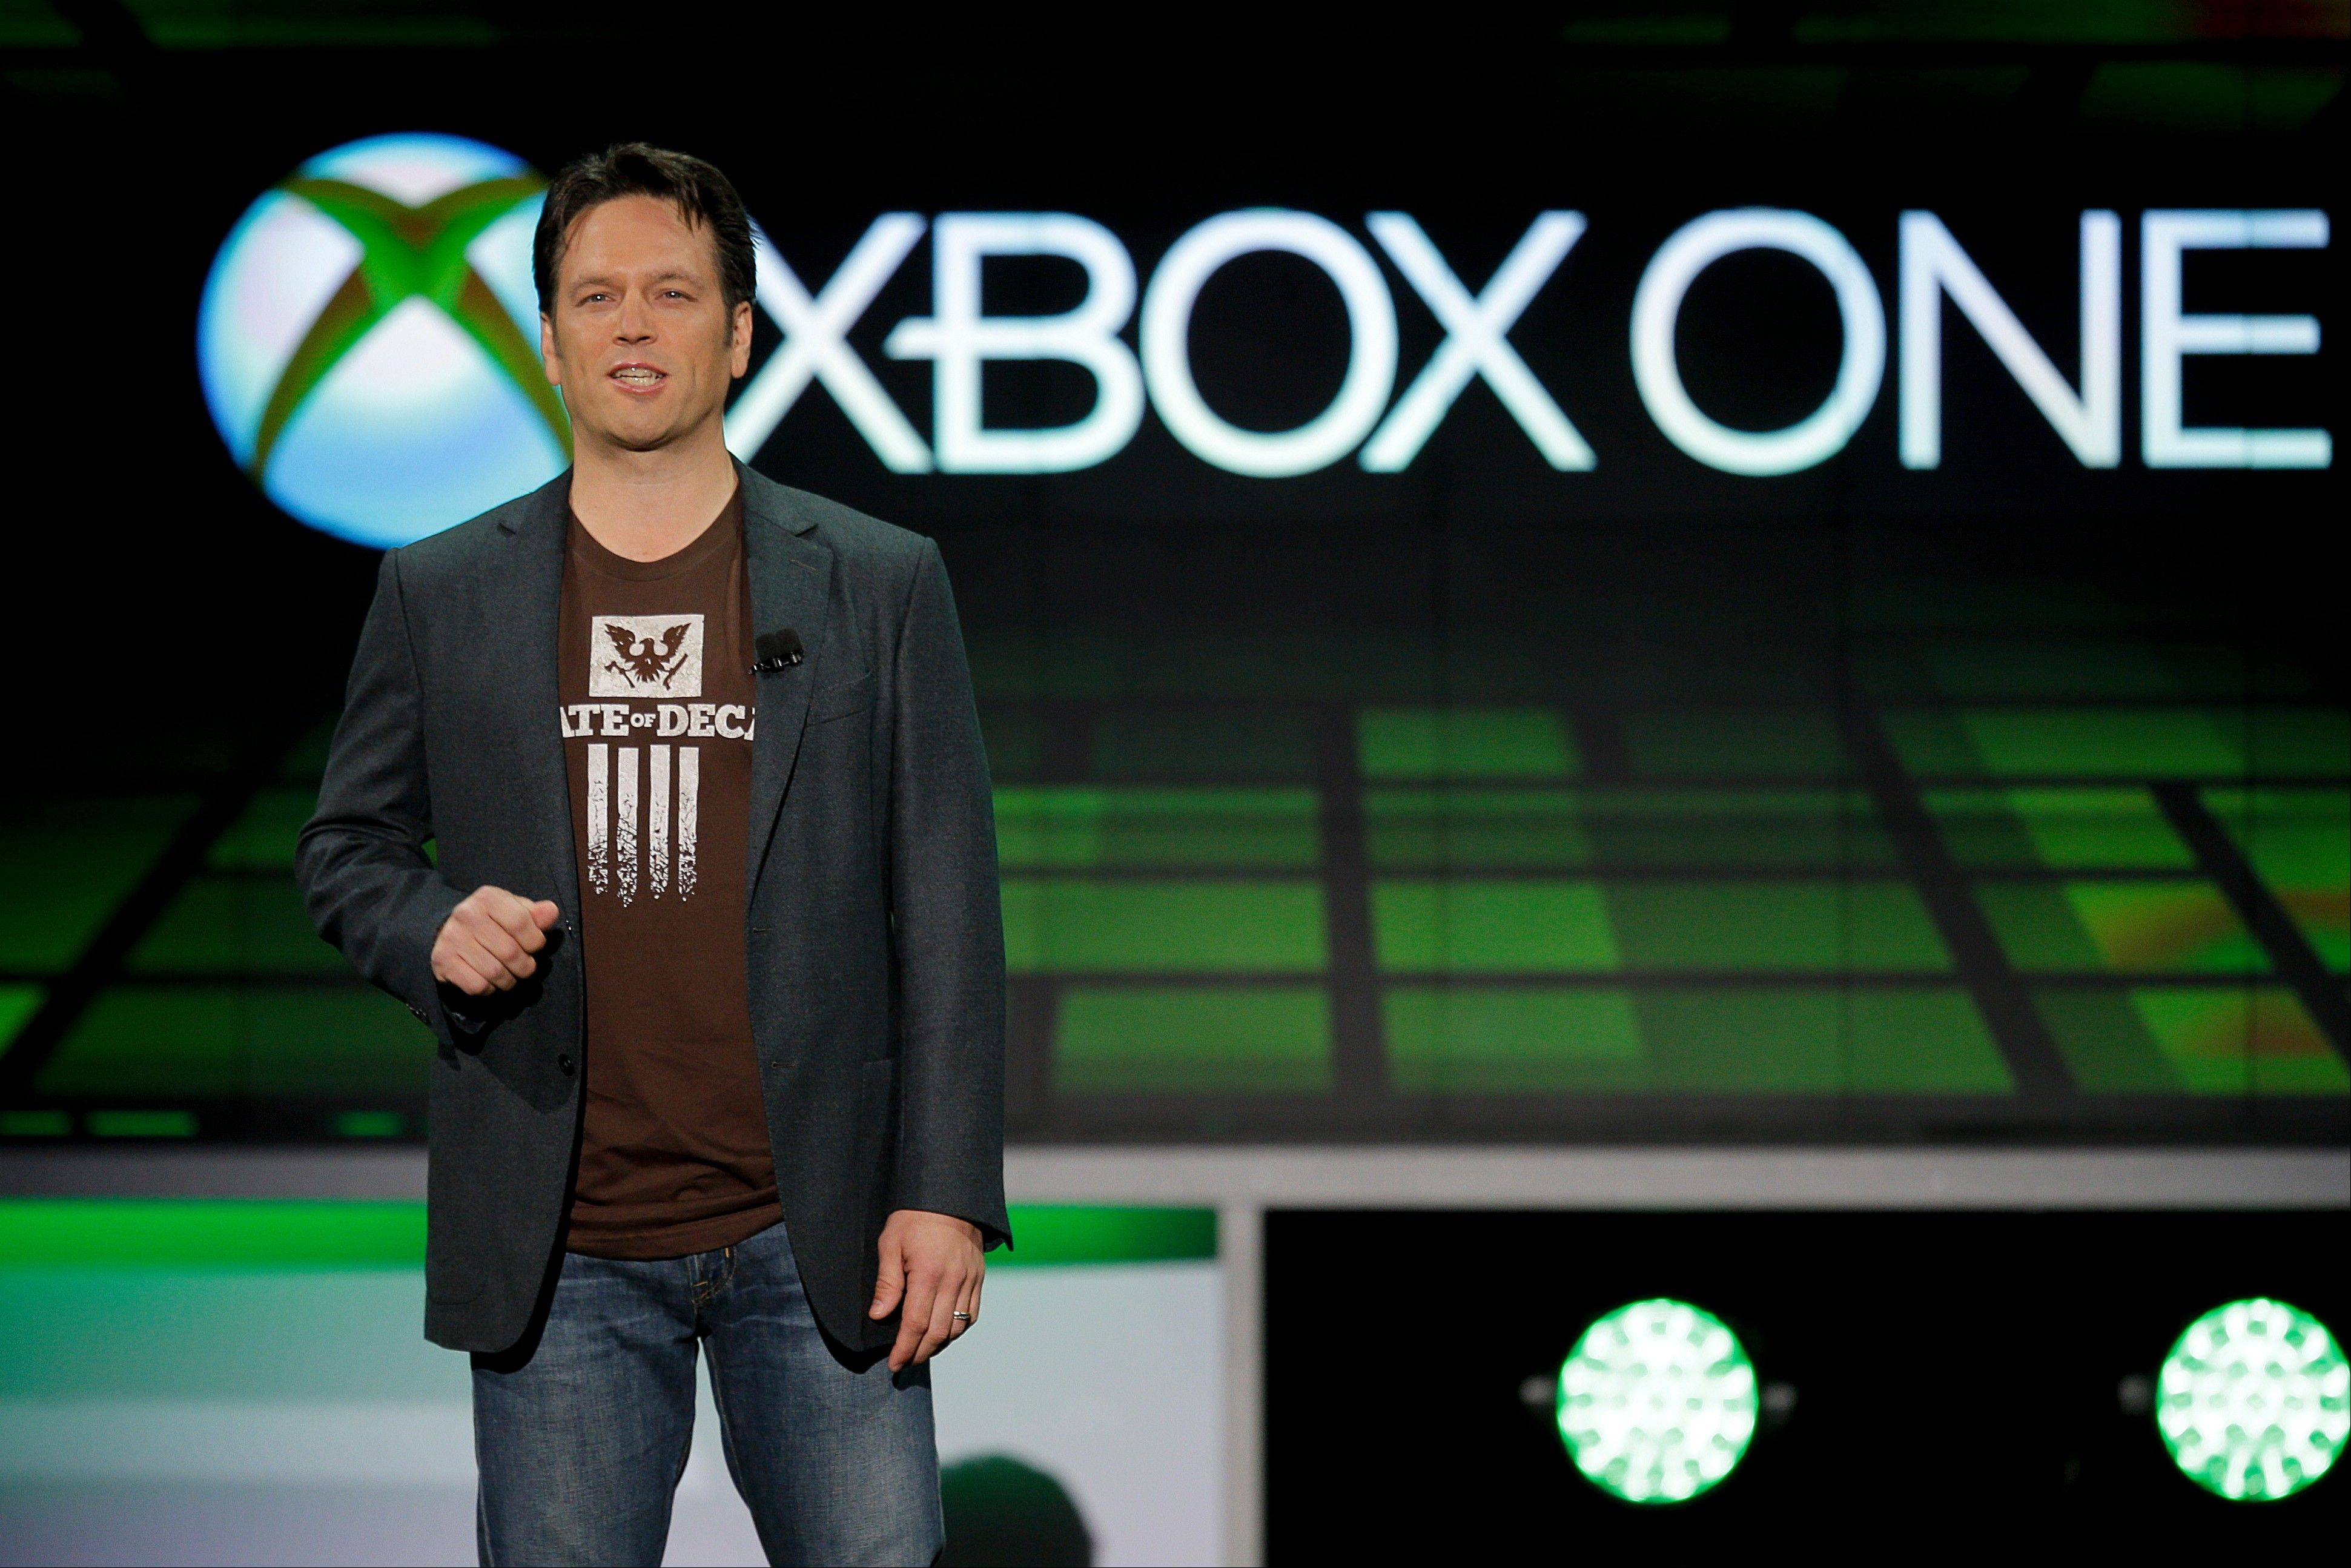 Phil Spencer of Microsoft Game Studios speaks at the Microsoft Xbox E3 media briefing in Los Angeles, Monday